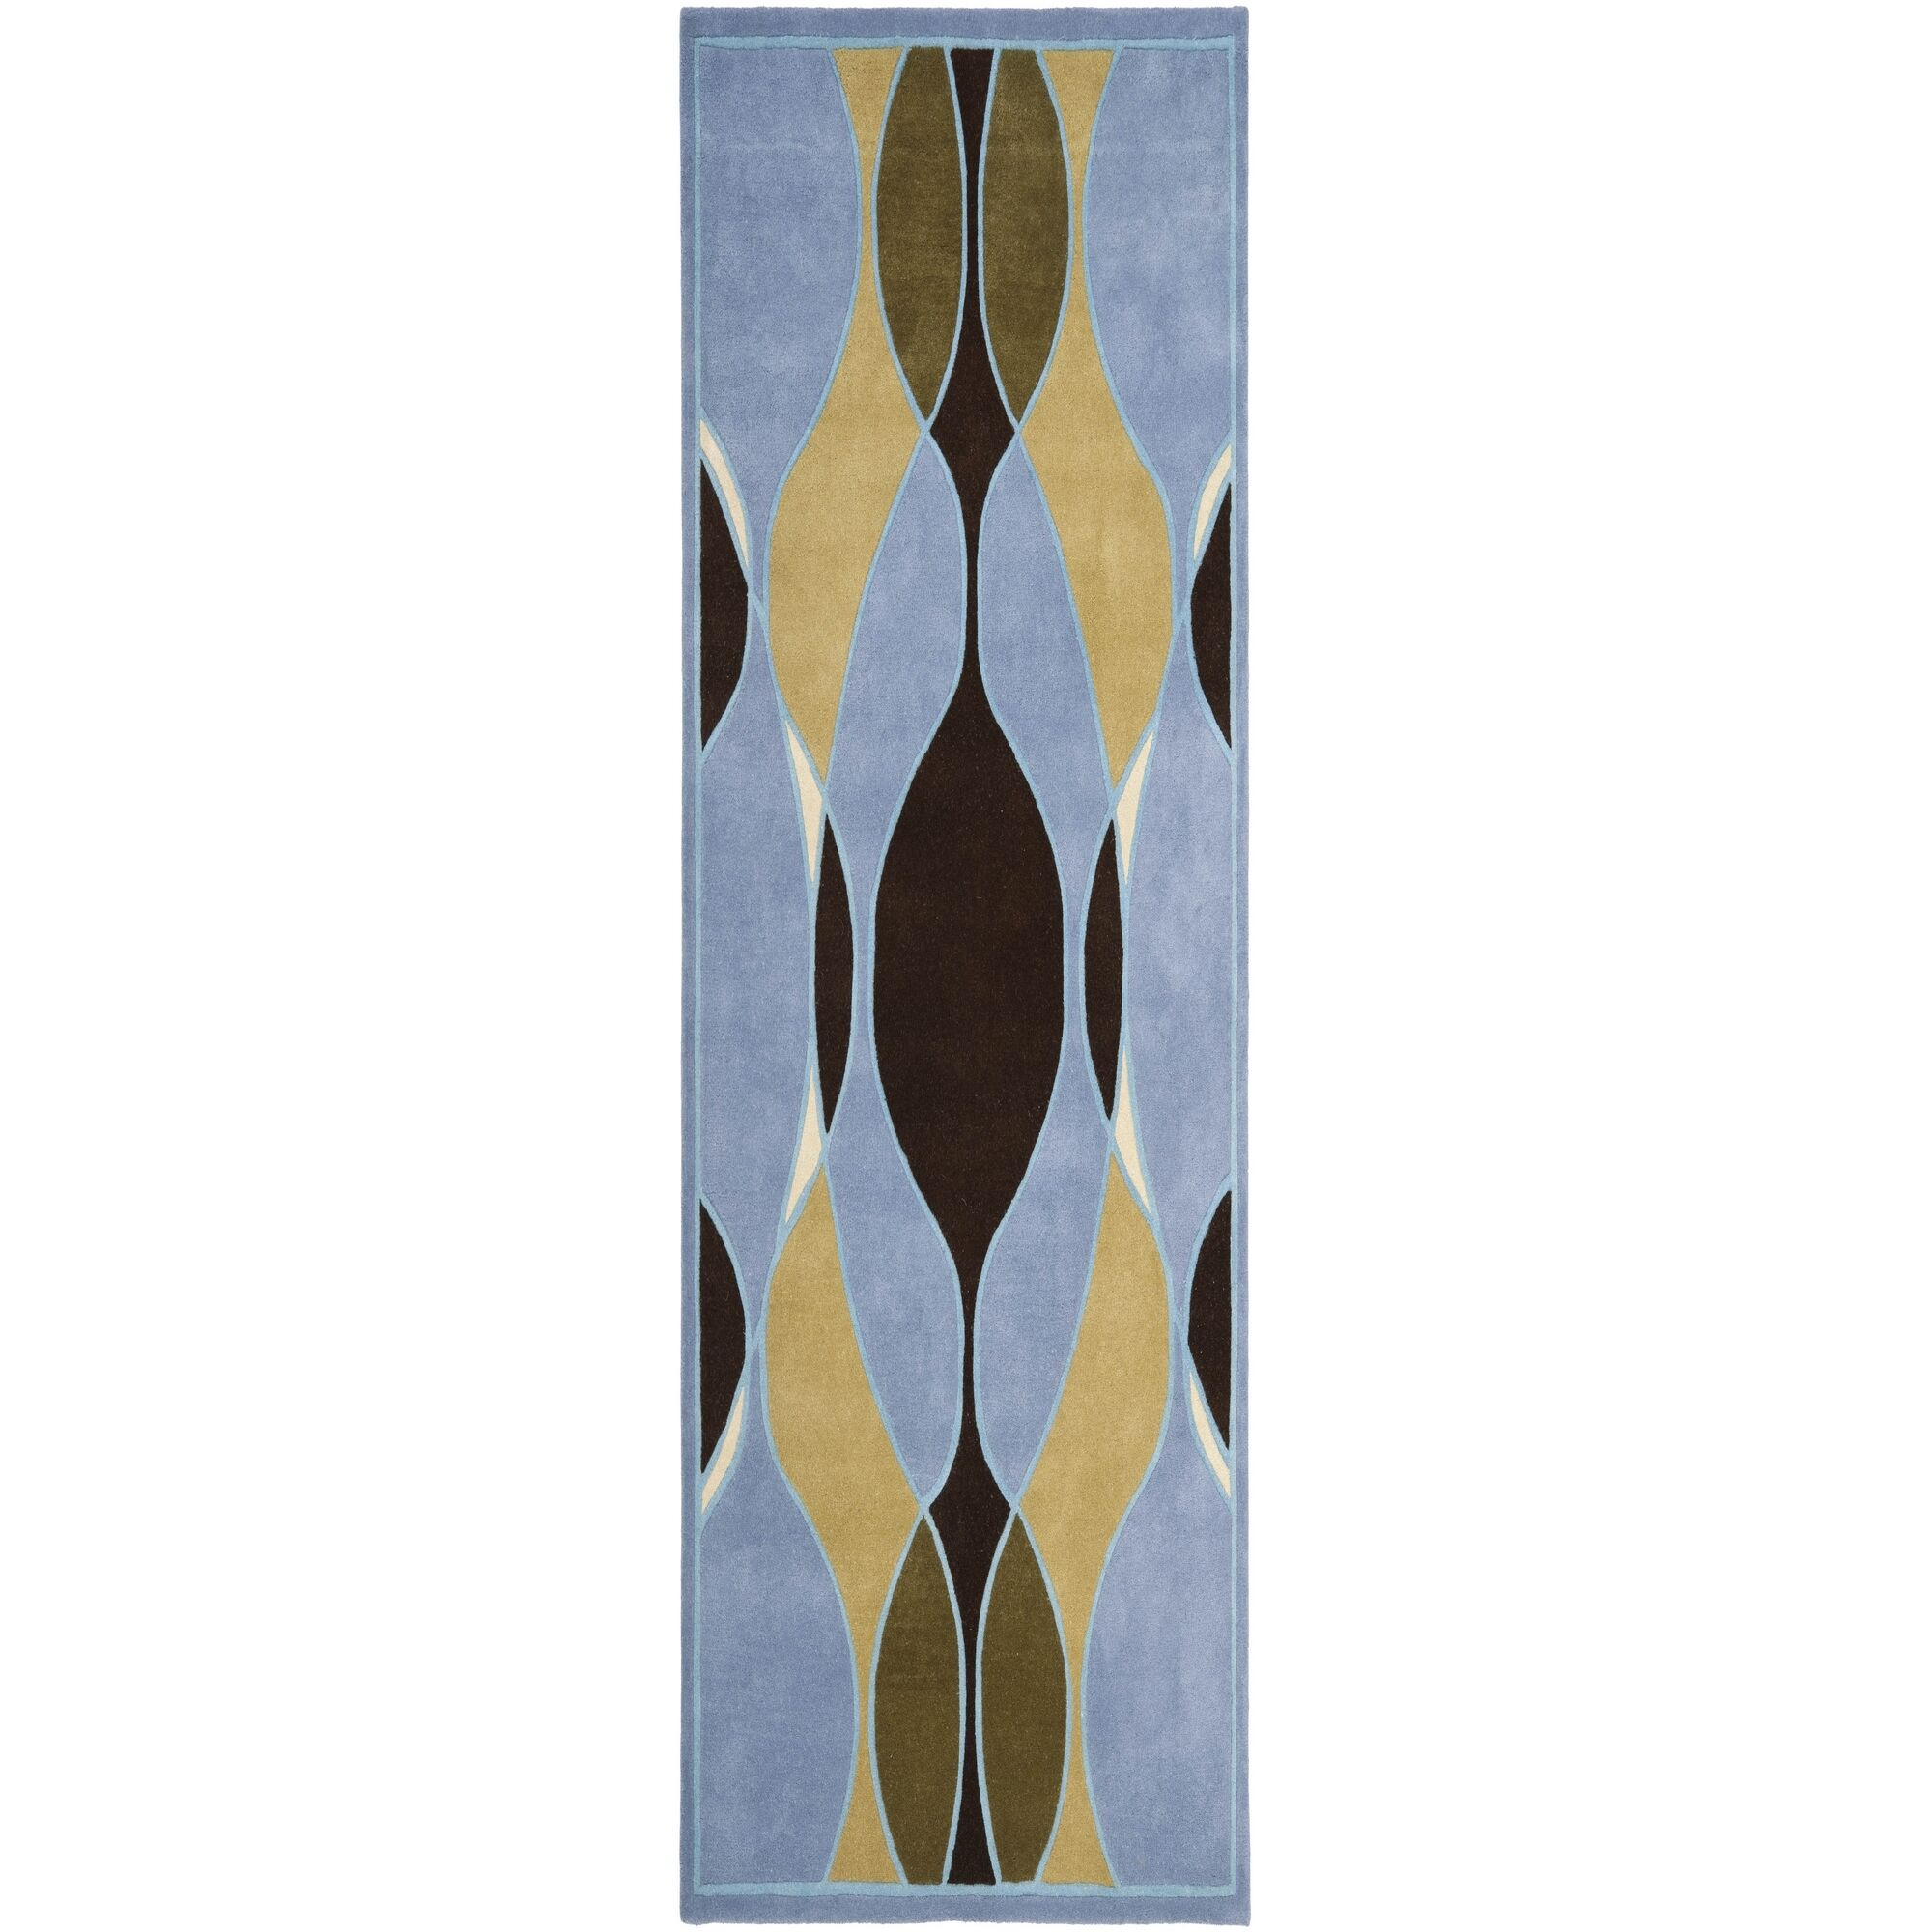 Lockwood Blue Swirl Area Rug Rug Size: Runner 2'6